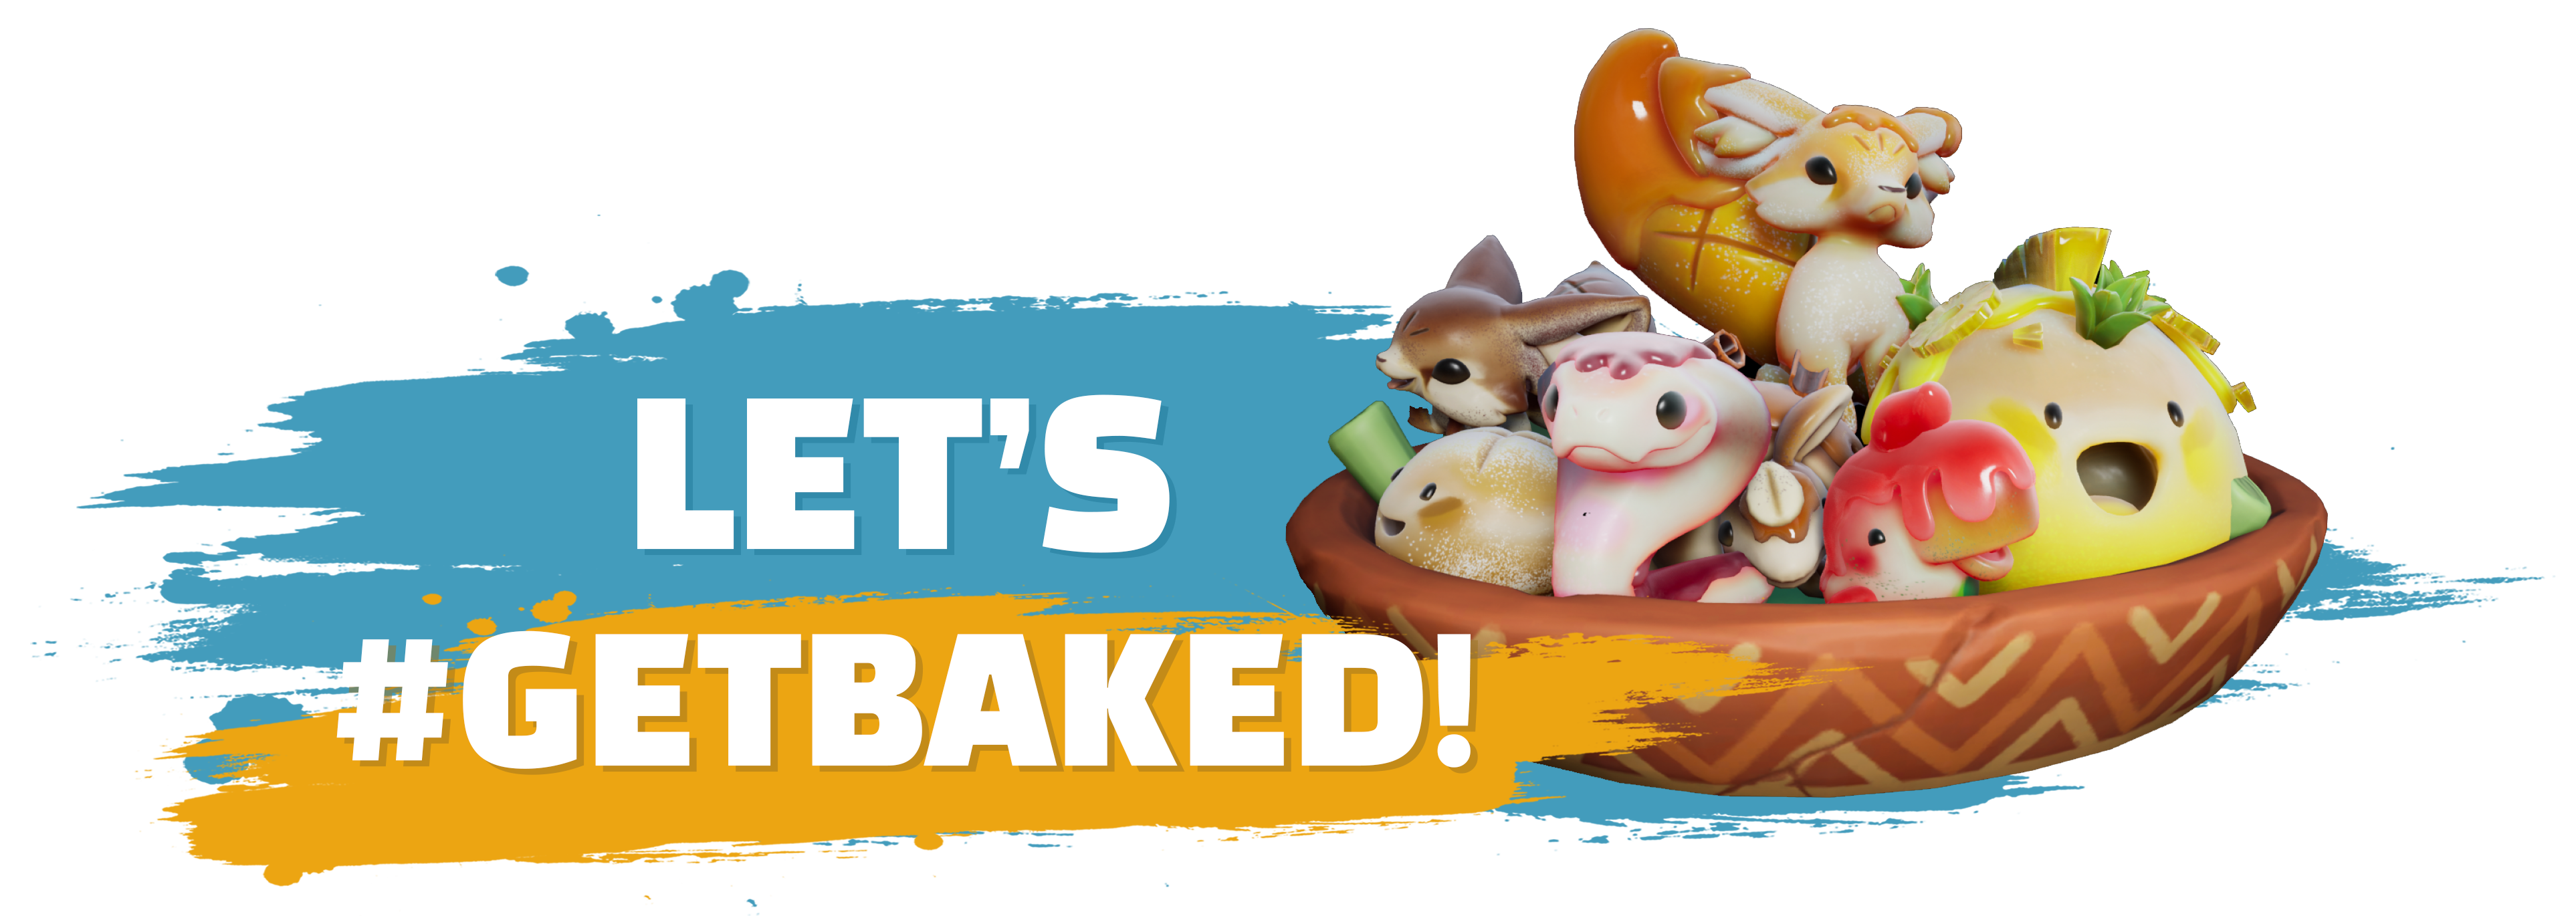 Bake 'n Switch - Let's get baked!